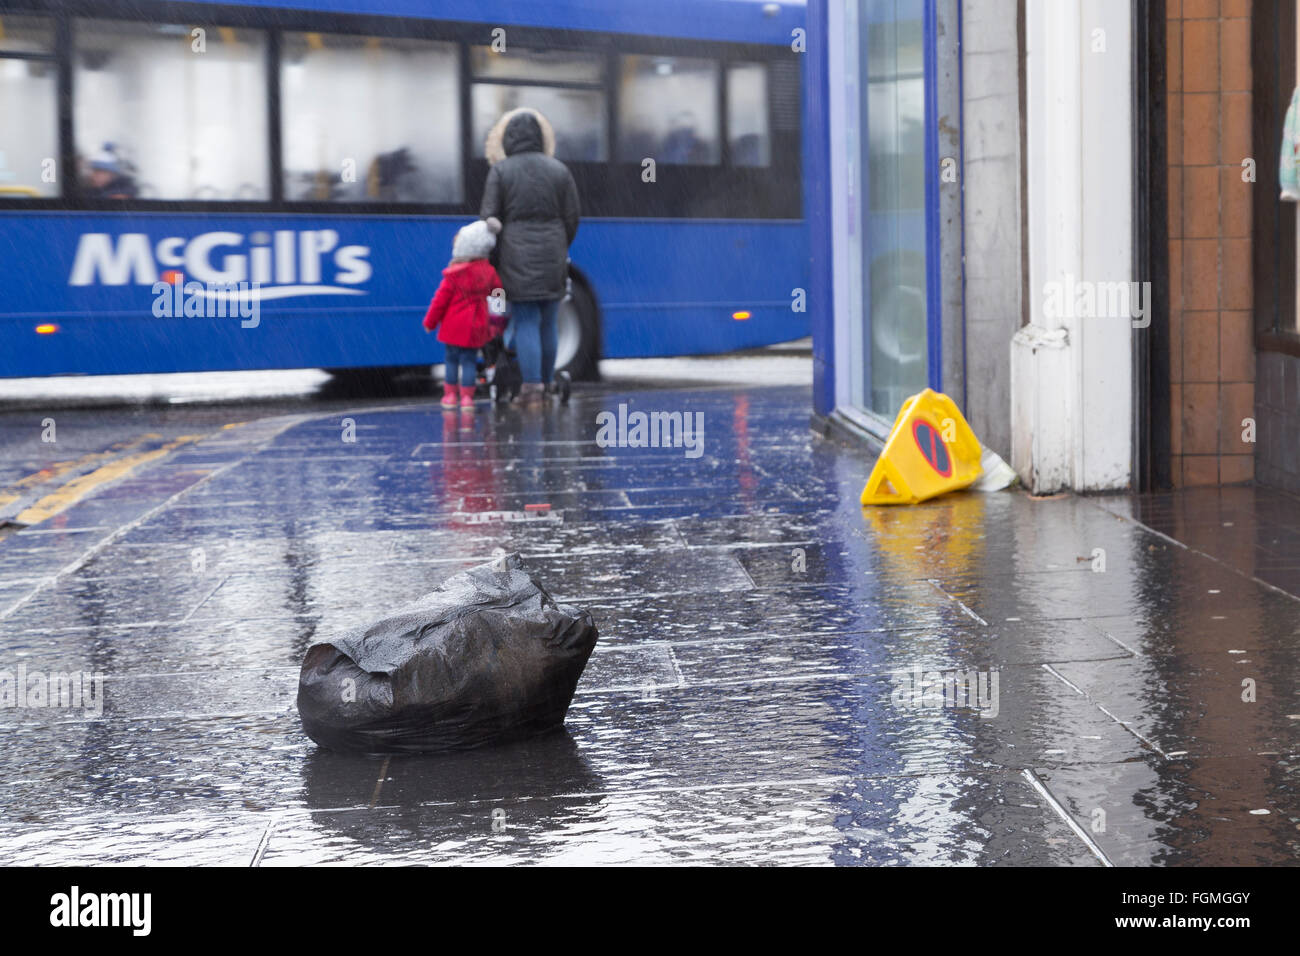 rubbish on high street in Paisley, 26/01/2016 - Stock Image